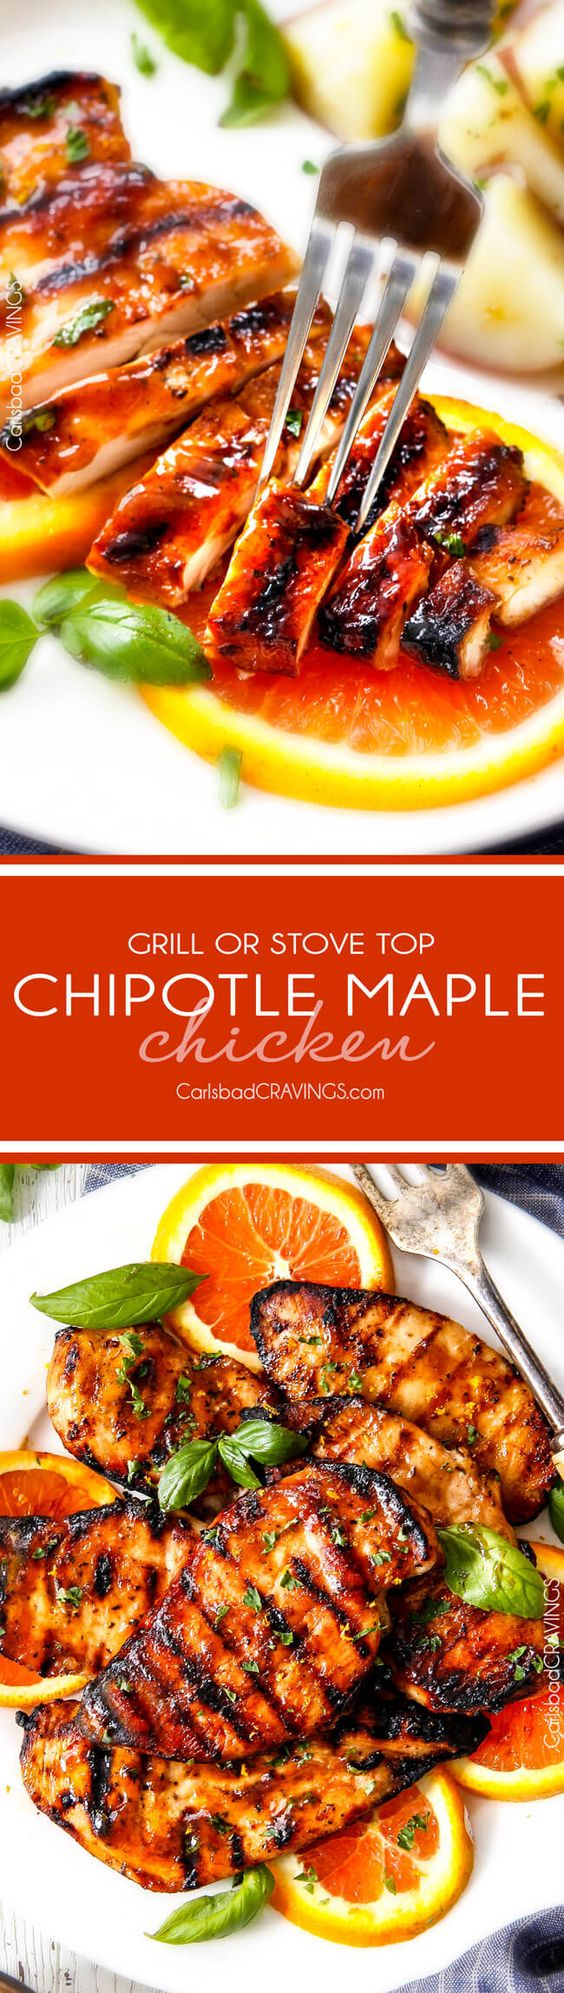 10 Minute prep Grilled or Stove Top Chipotle Maple Chicken - I LOVE ...